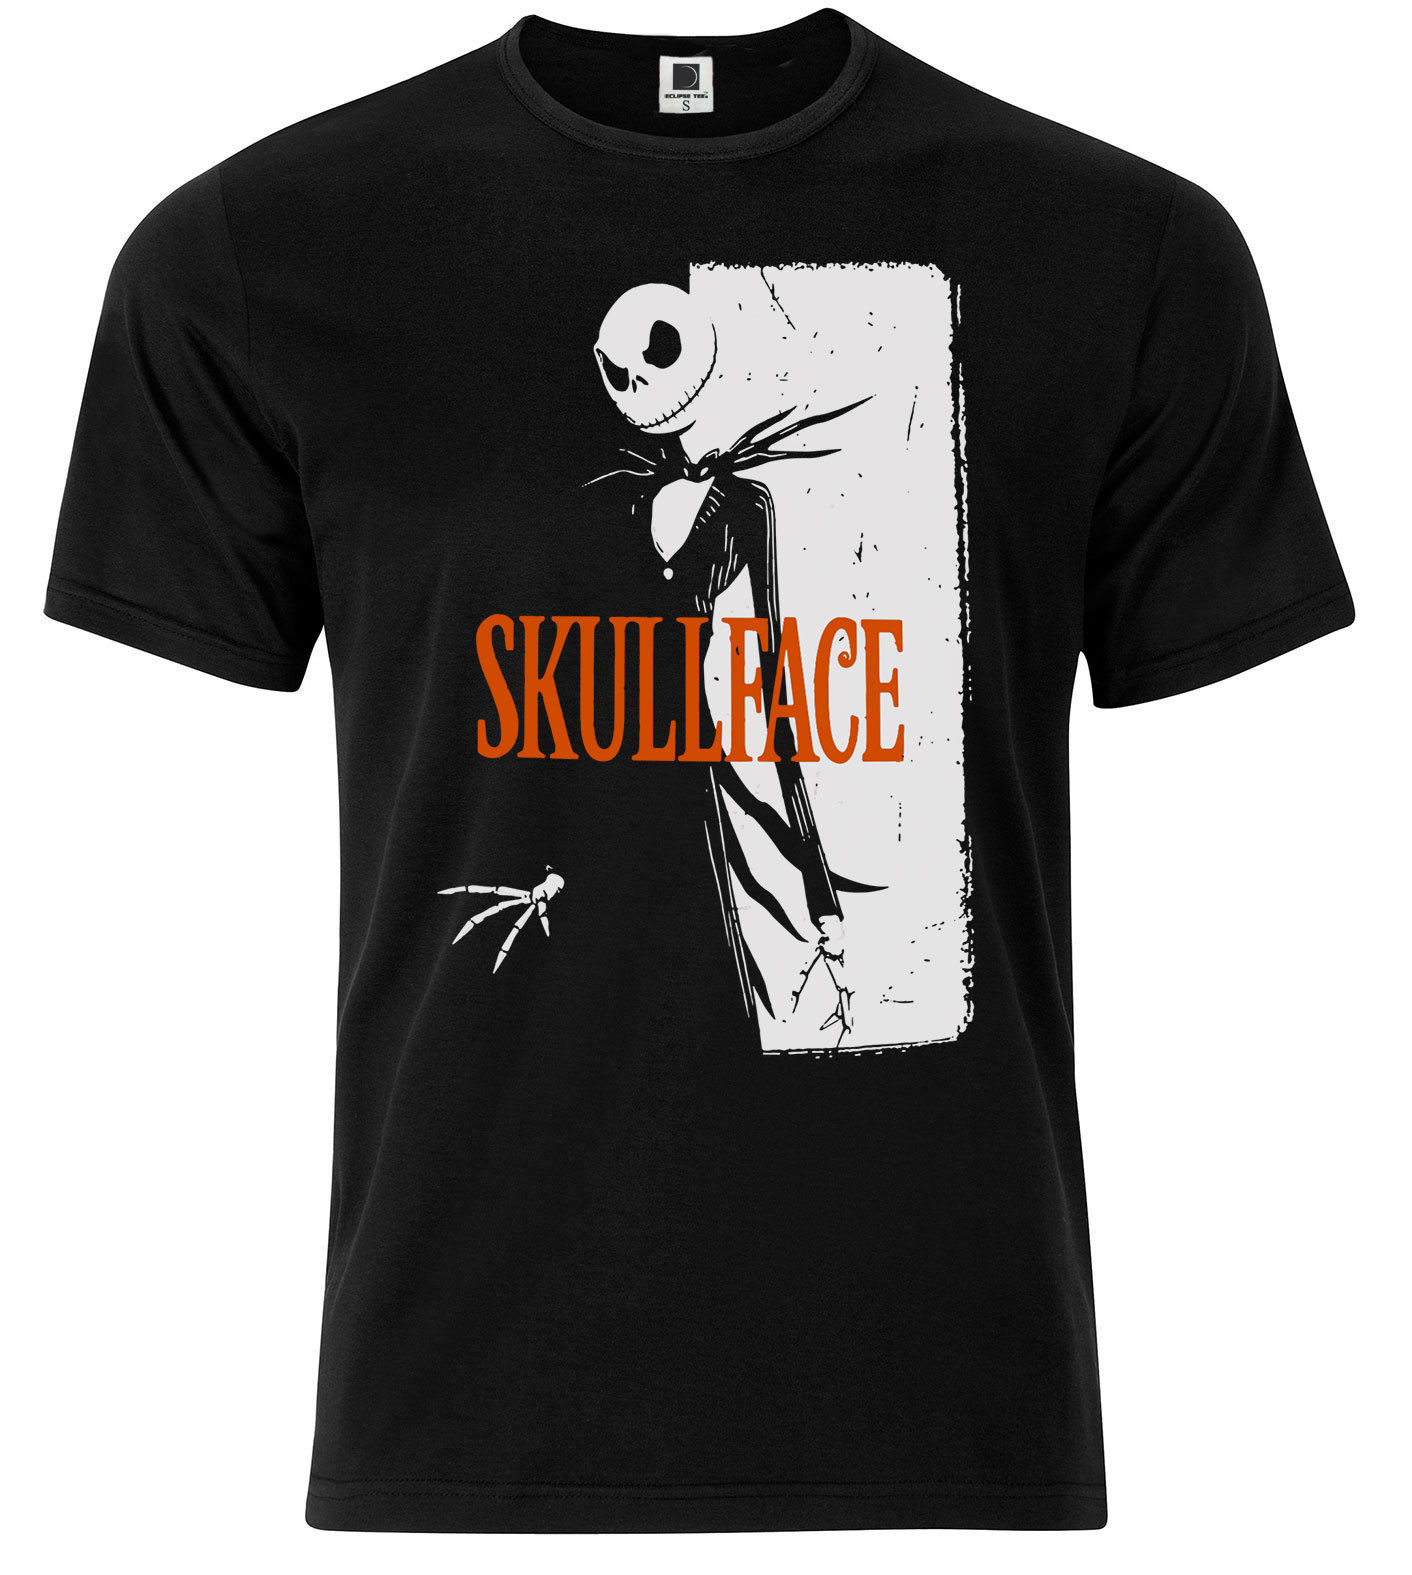 Skull Face Jack Skellington T-Shirt The Nightmare Before Christmas Gift Idea t shirts ...